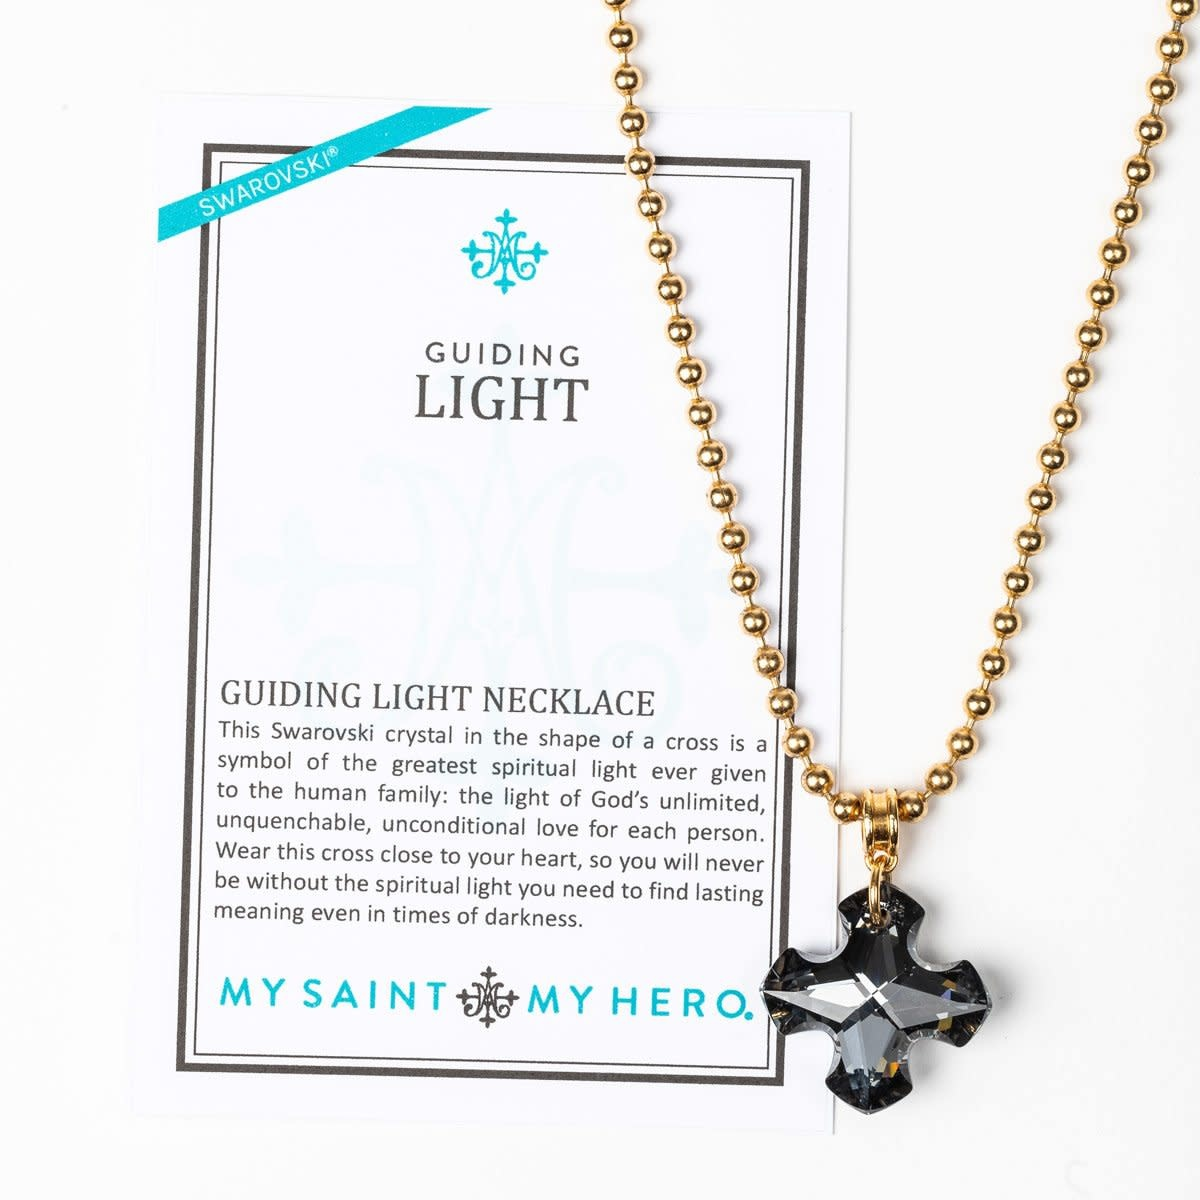 My Saint My Hero Guiding Light Necklace Shadow